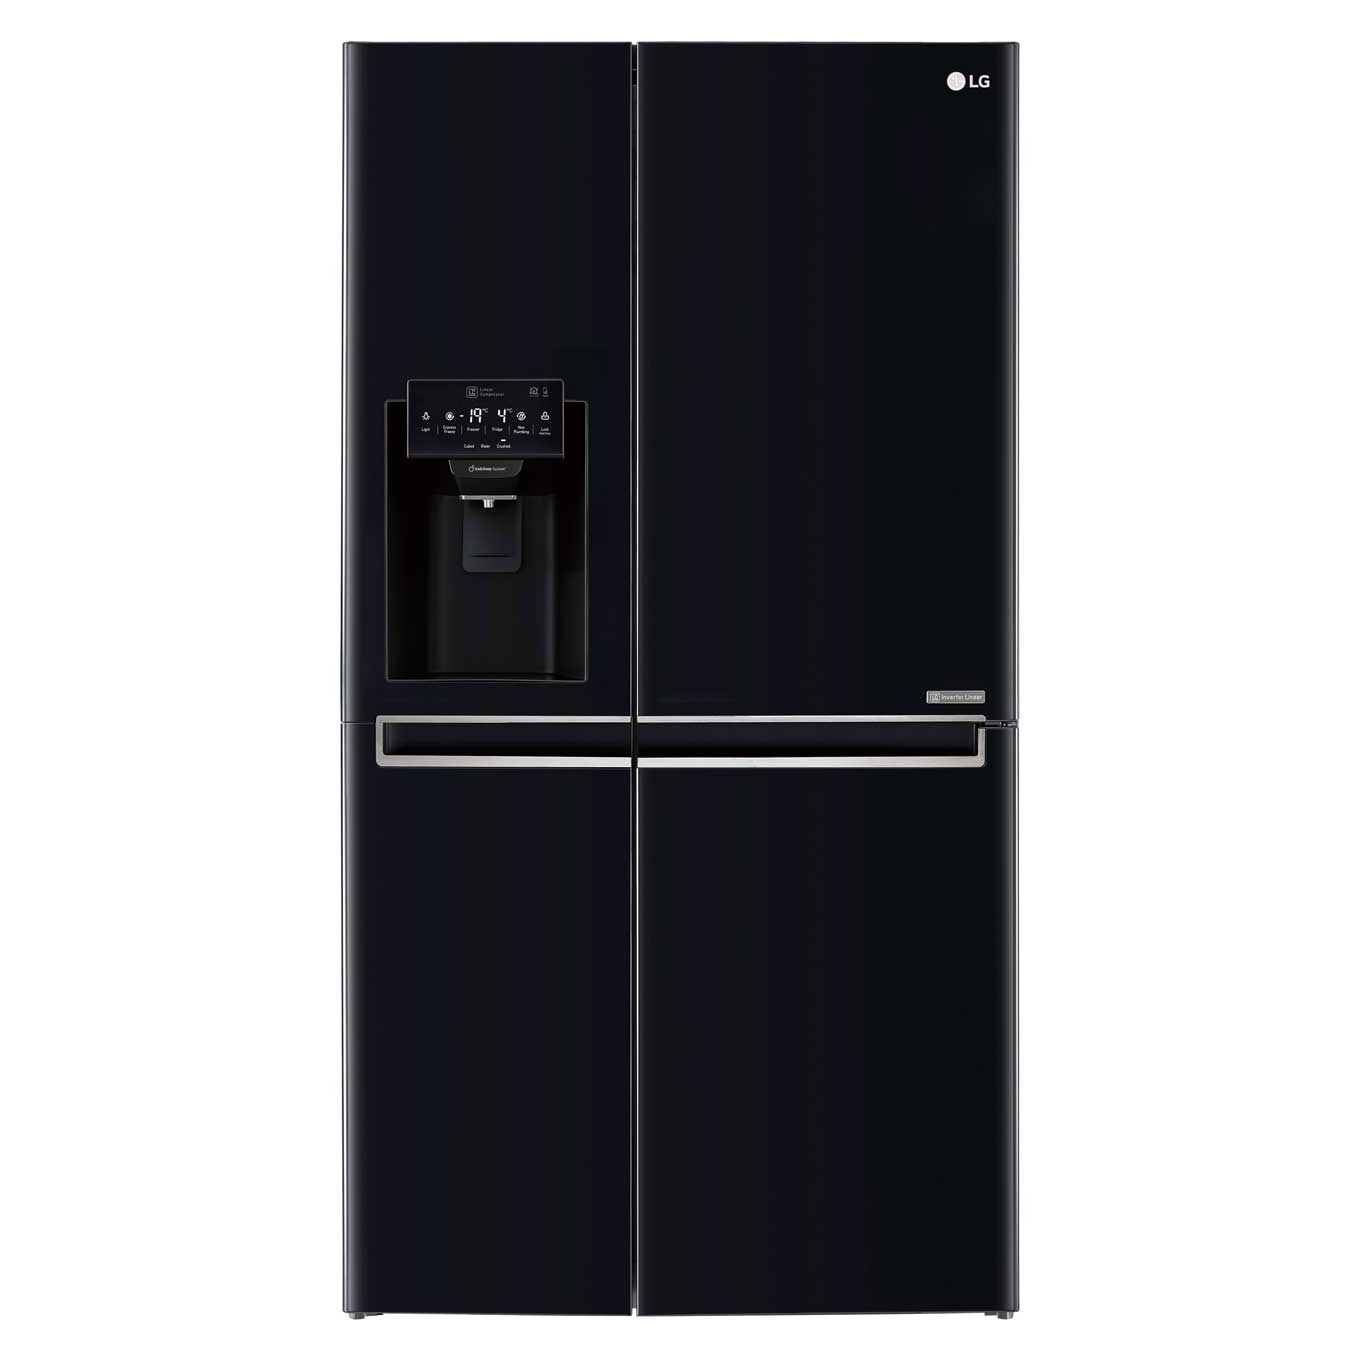 LG GSL761WBXV American Fridge Freezer in Black, Ice + Water A+ Rated